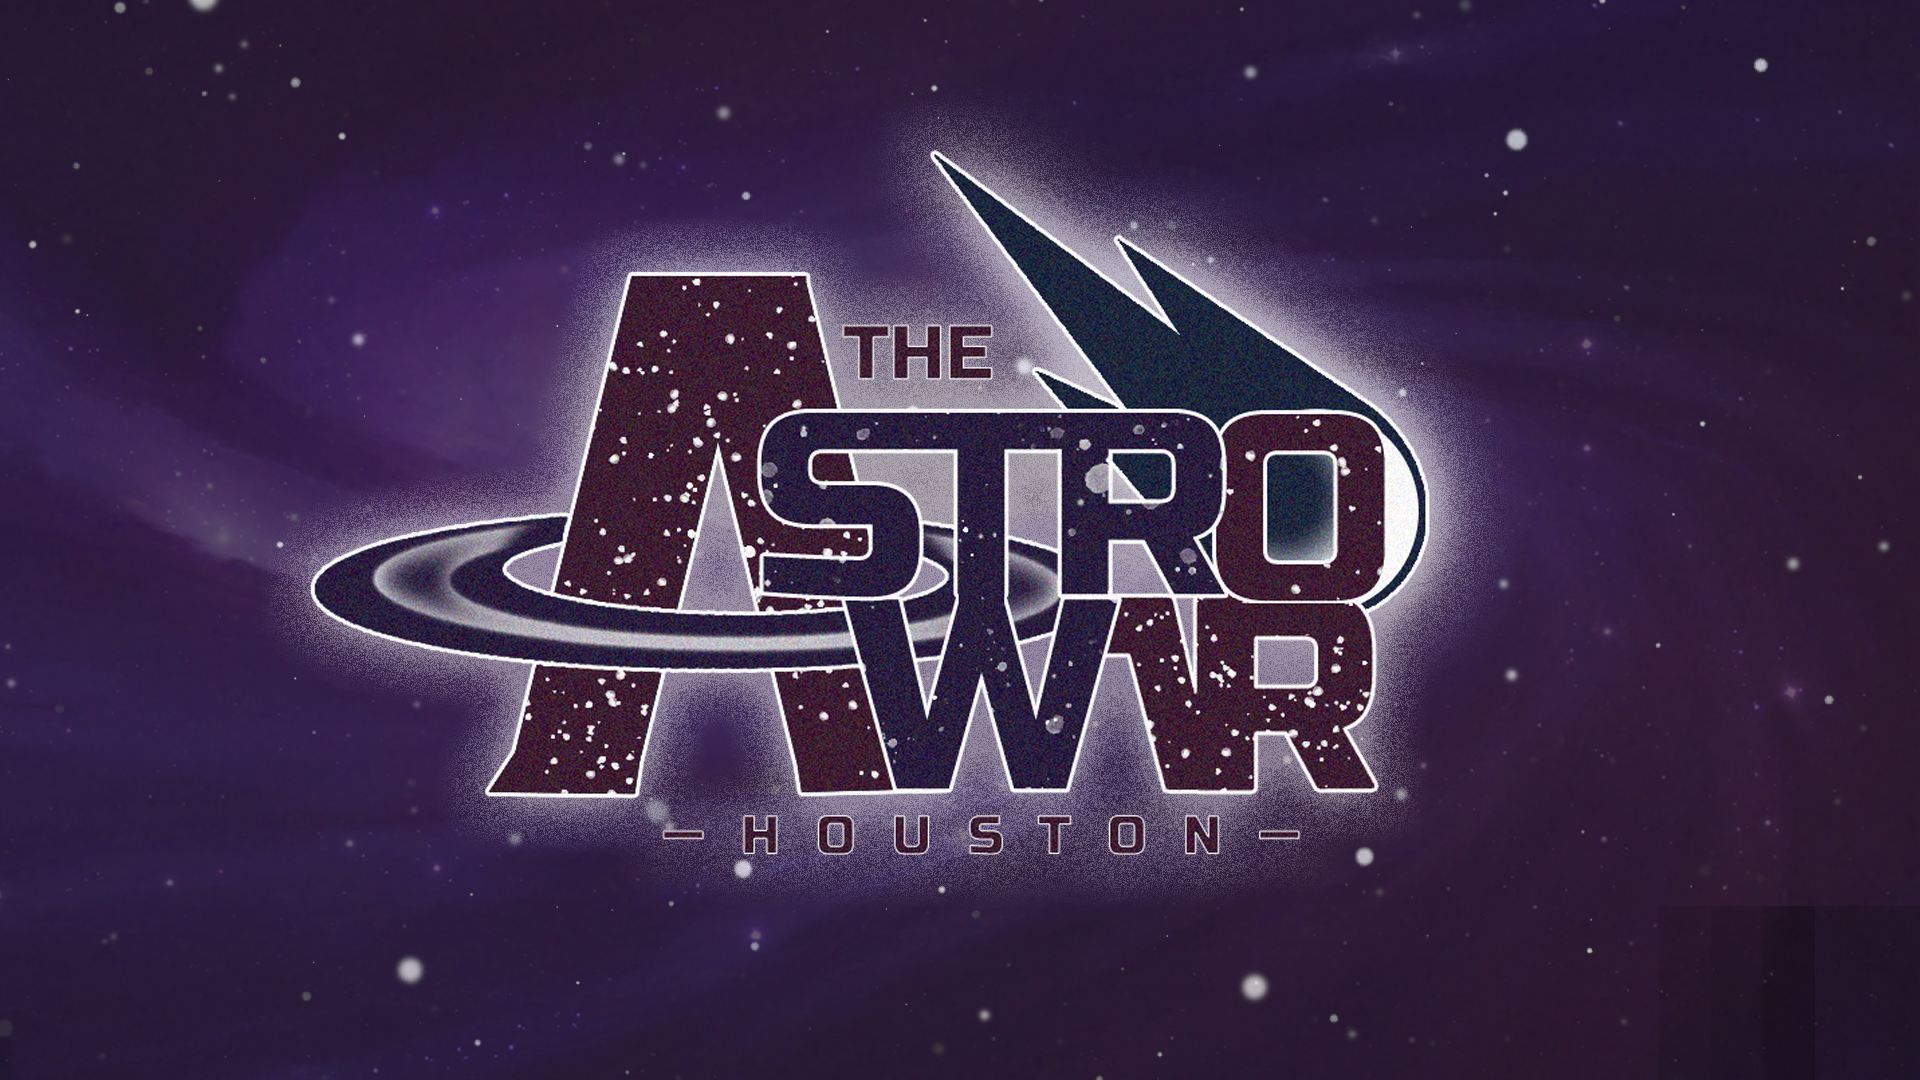 The Astro World Logo COLOR WALLPAPER.png